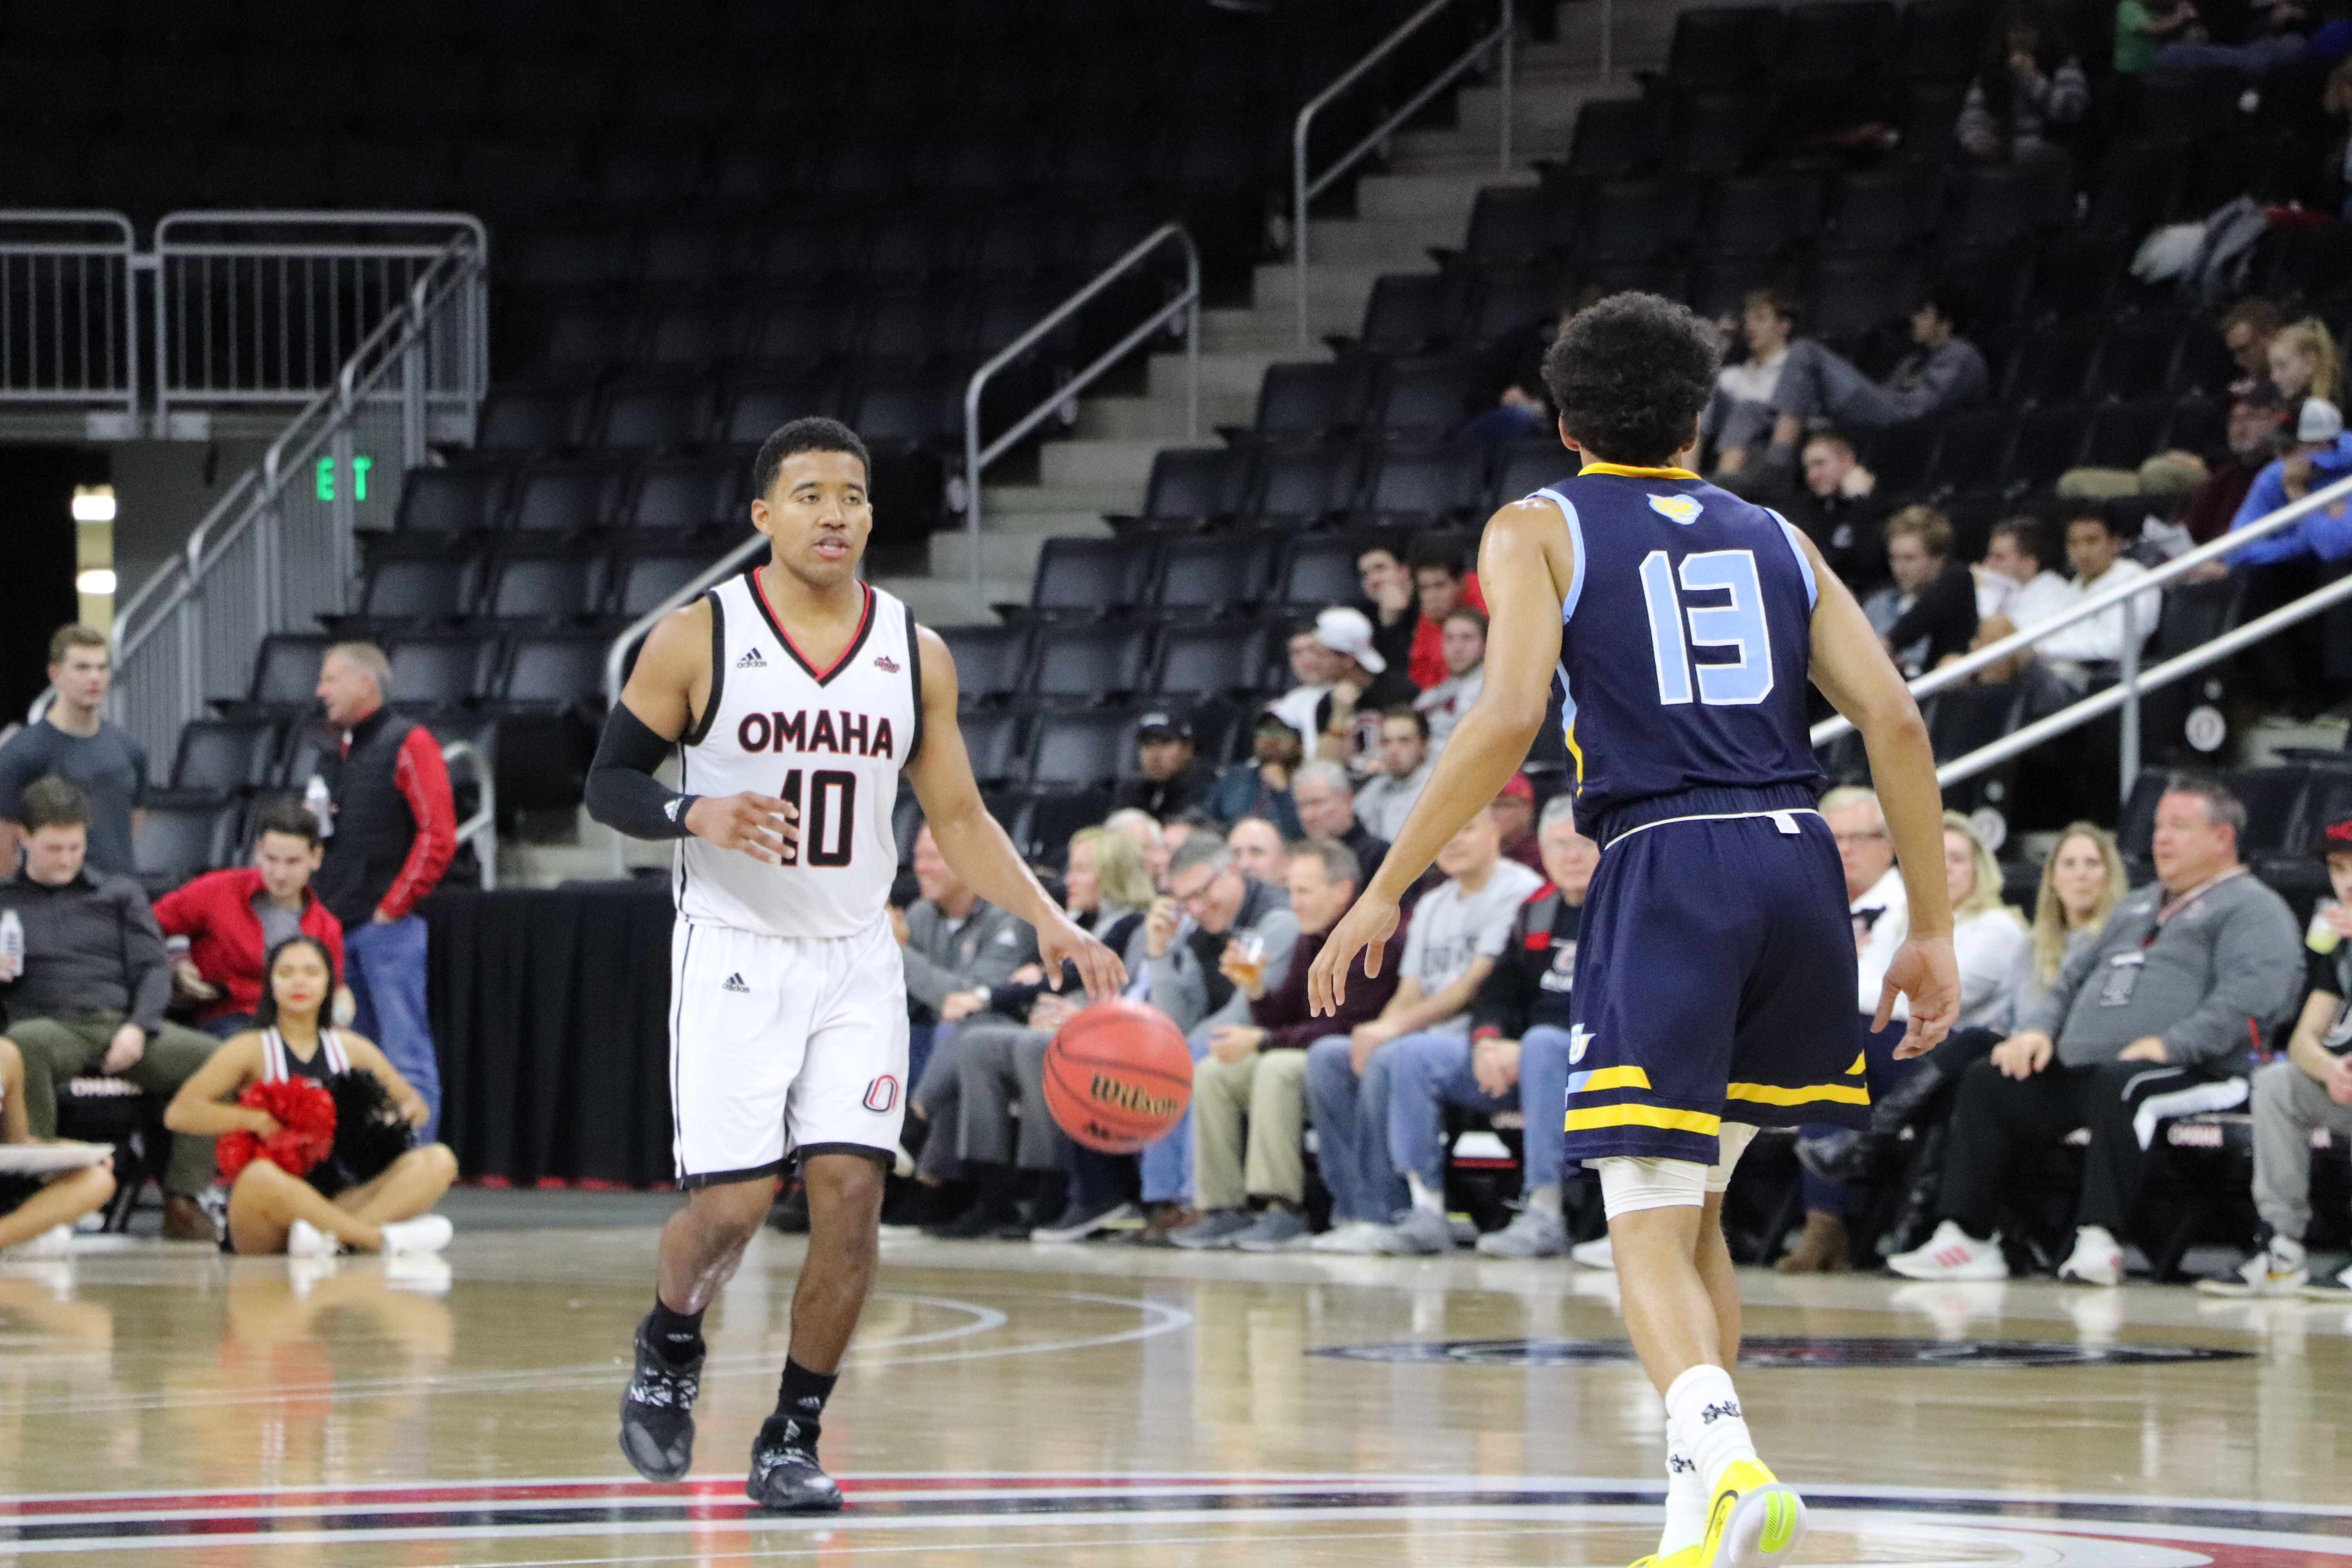 An Omaha basketball player dribbling down the court